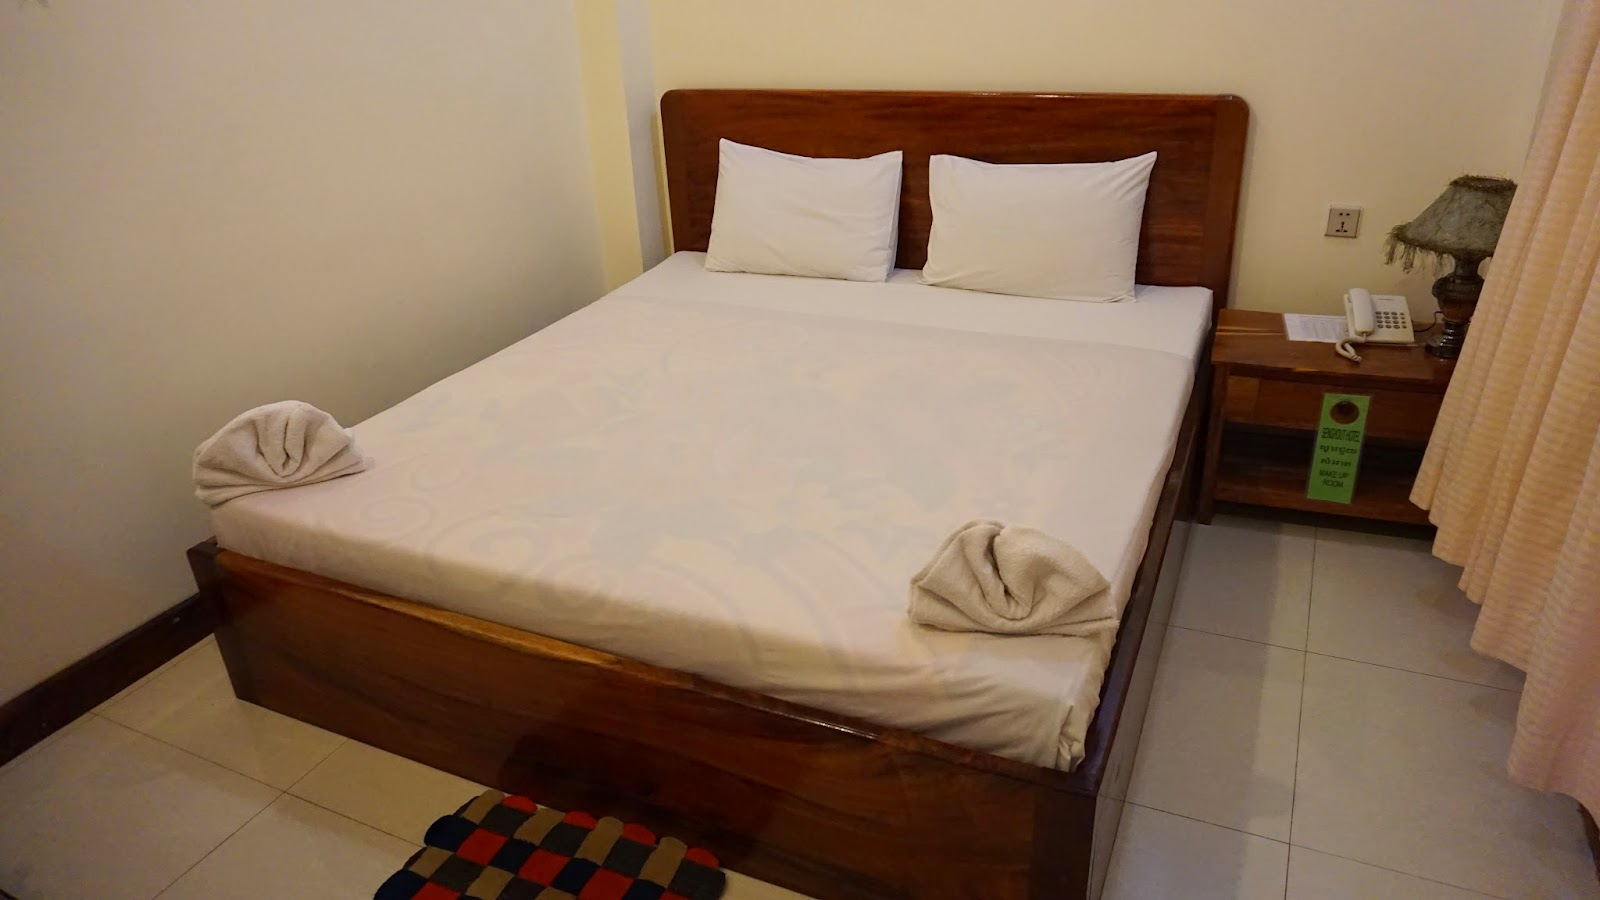 A quick glance at my room in Senghout Hotel. This was the nicest hotel I could find within my budget in Battambang